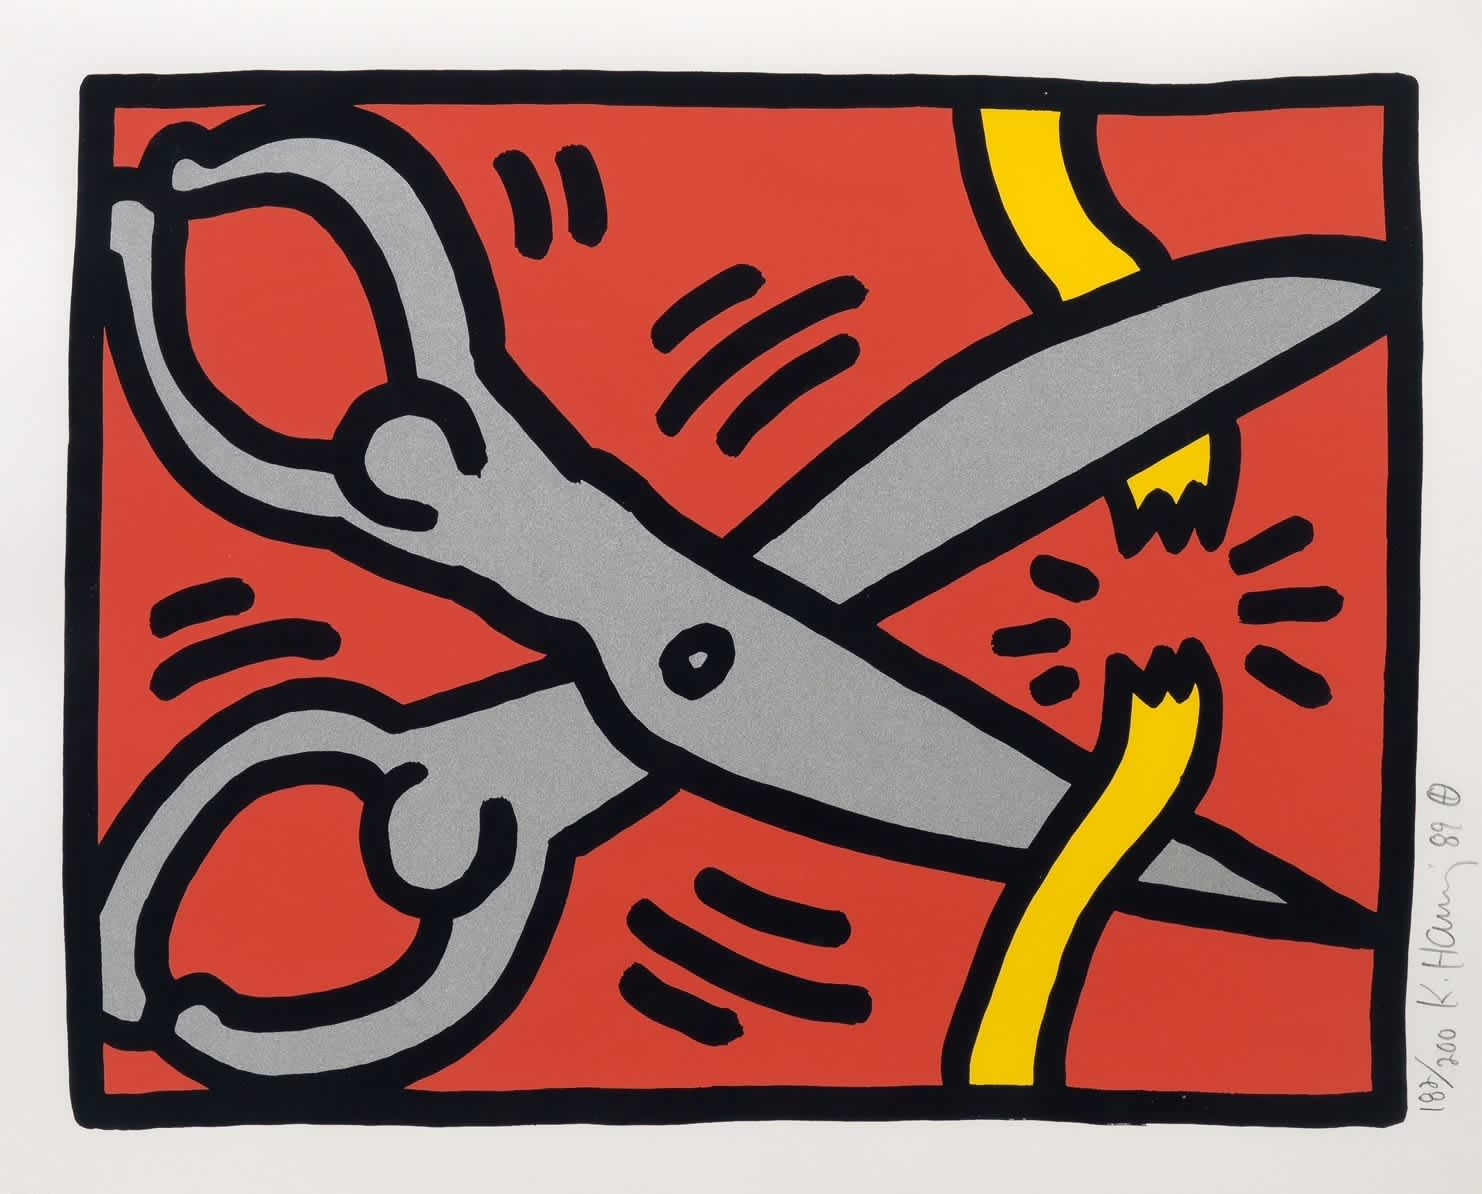 7 Ways Keith Haring Changed The Art World